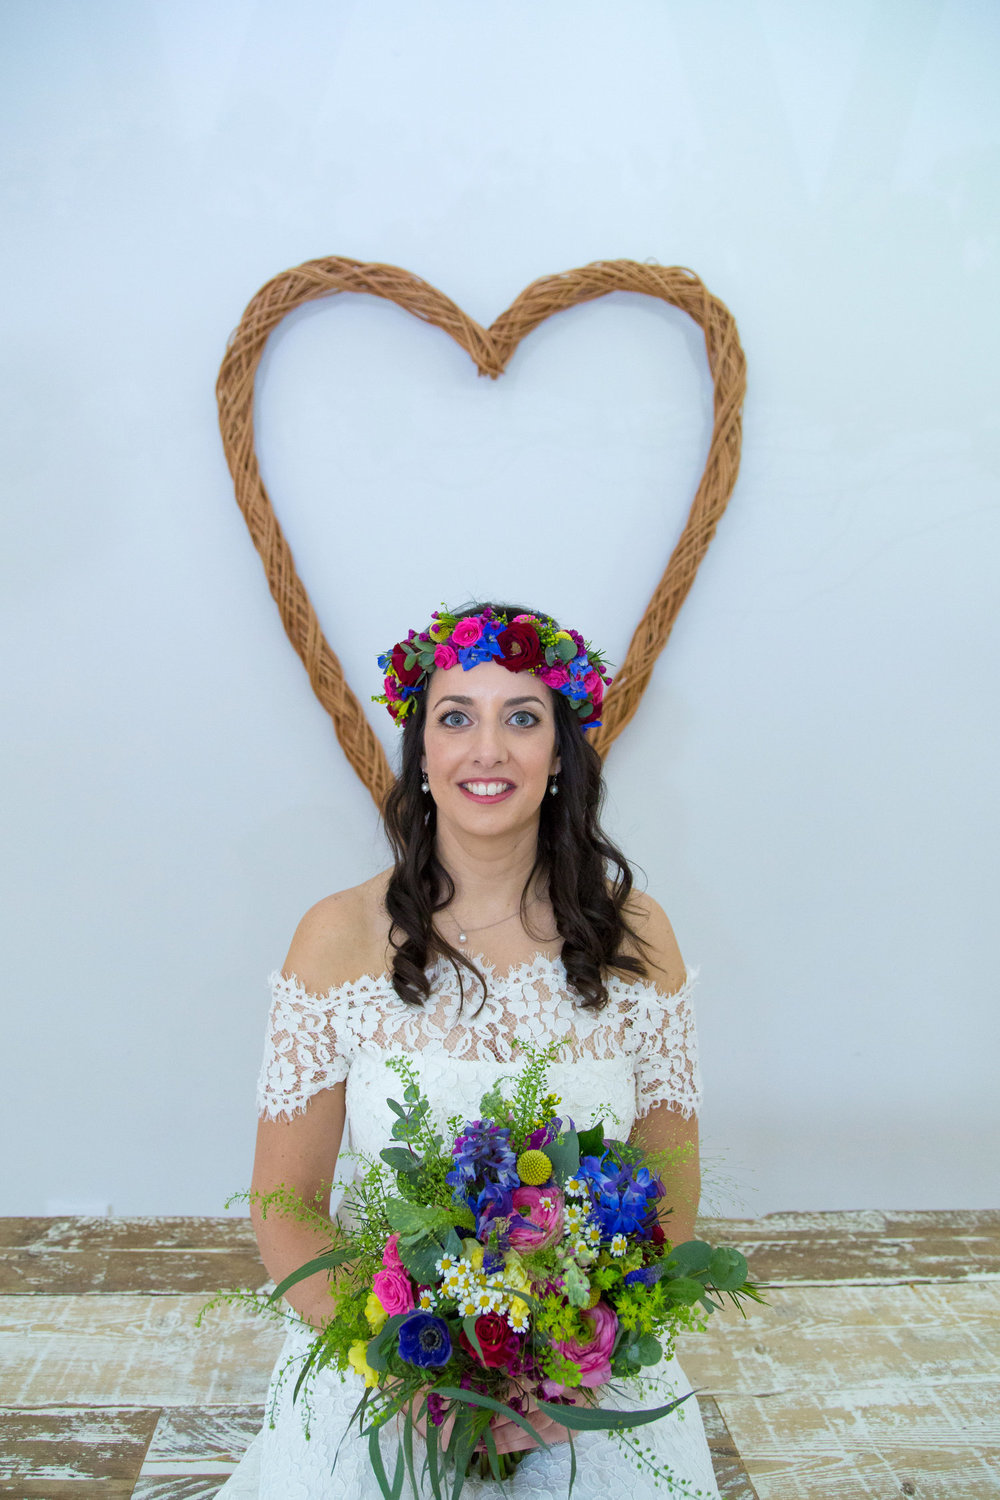 Vicky+Burlingham+Crown+and+Bouquet.jpg